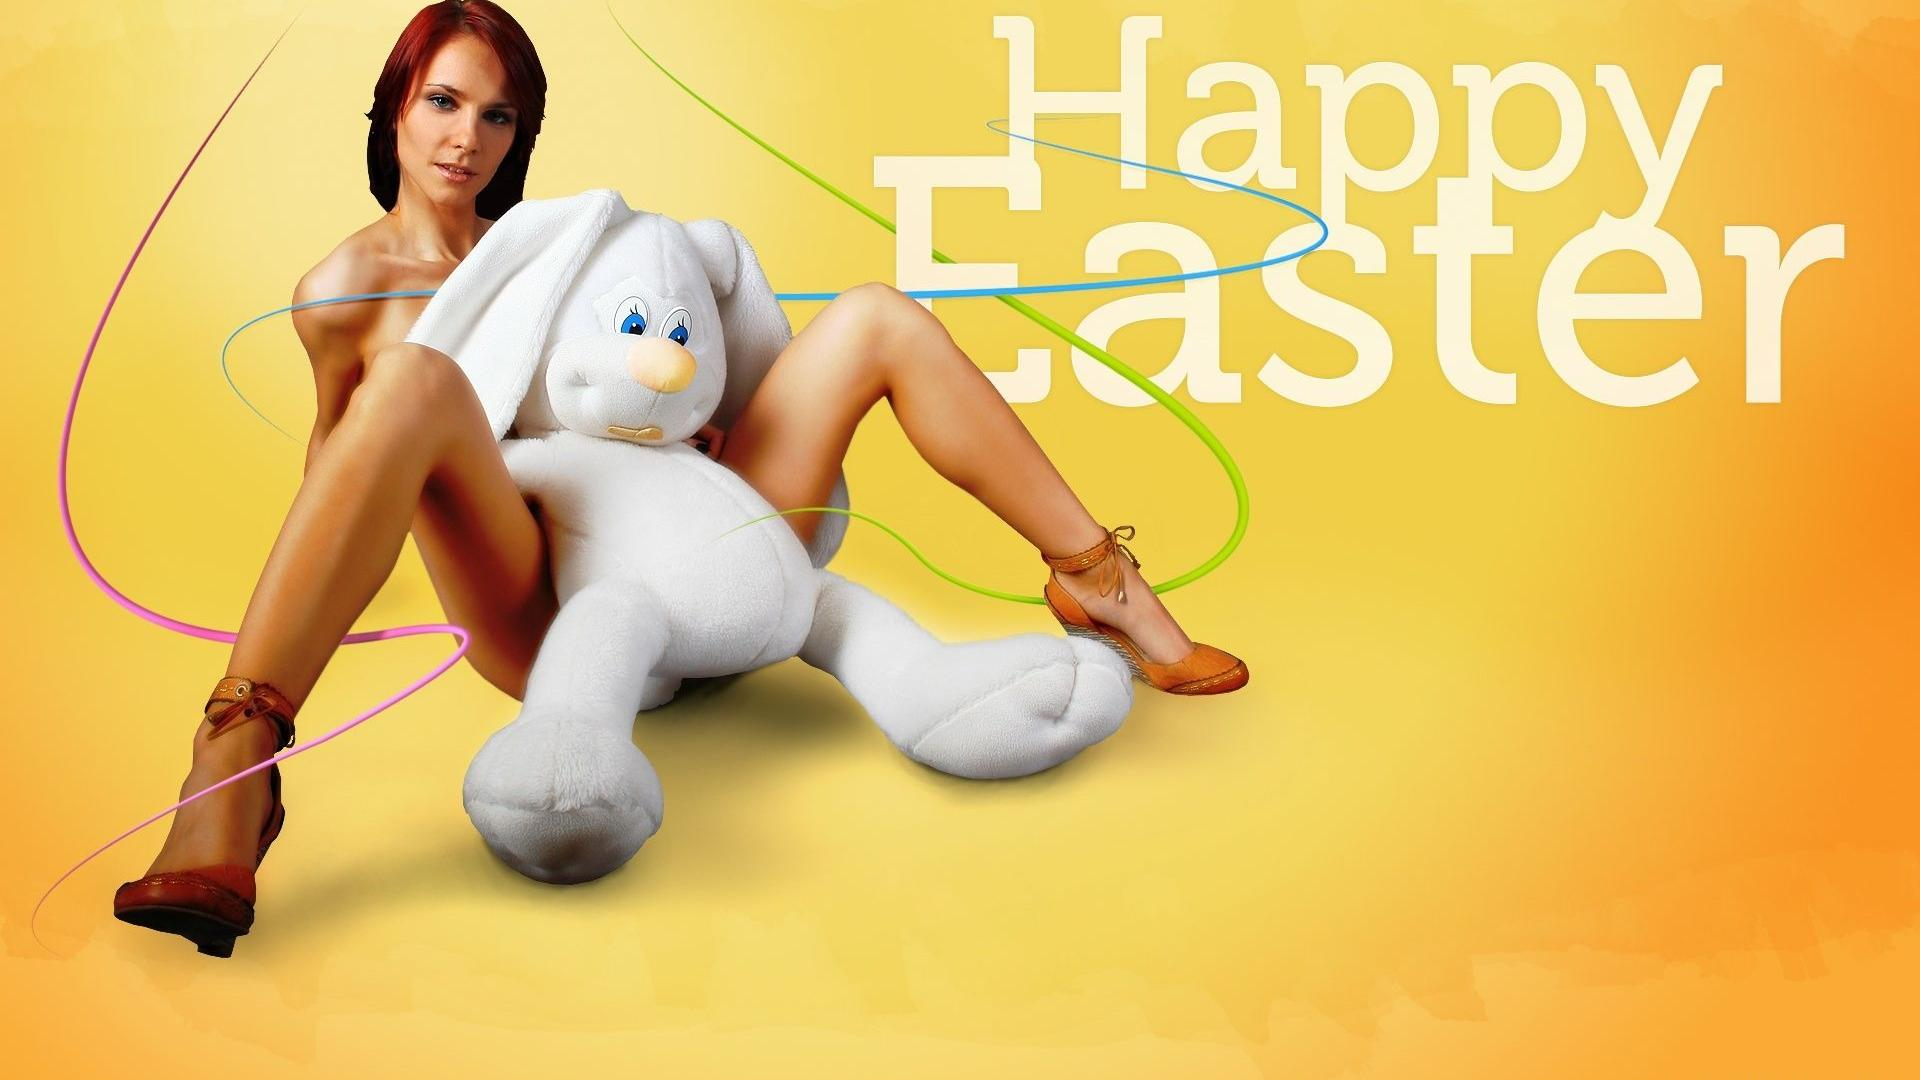 hot easter bunny naked